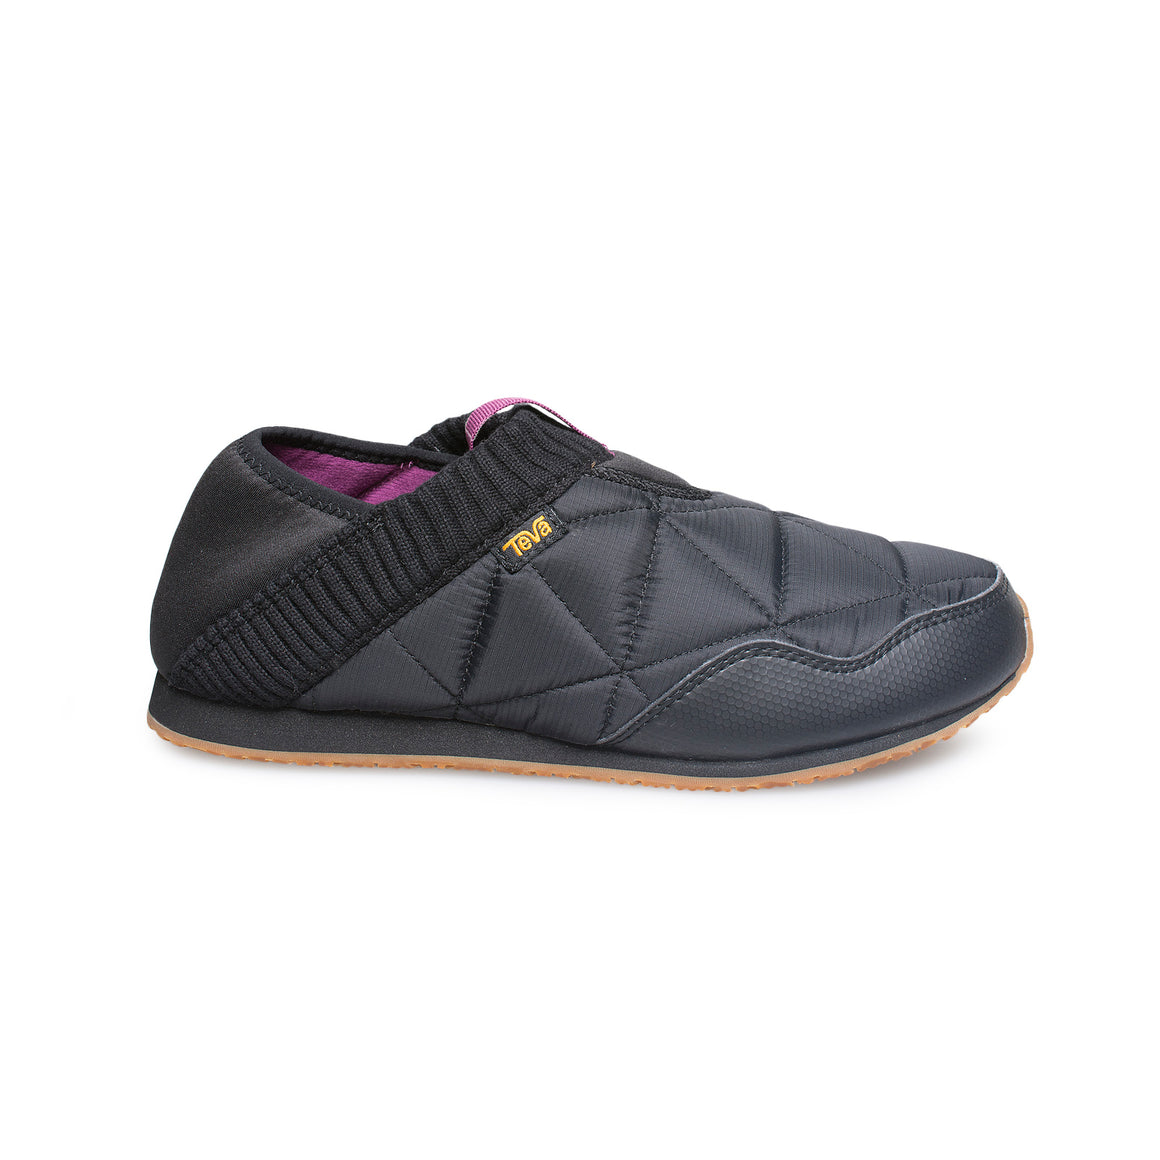 TEVA Ember Moc Black Shoes - Men's